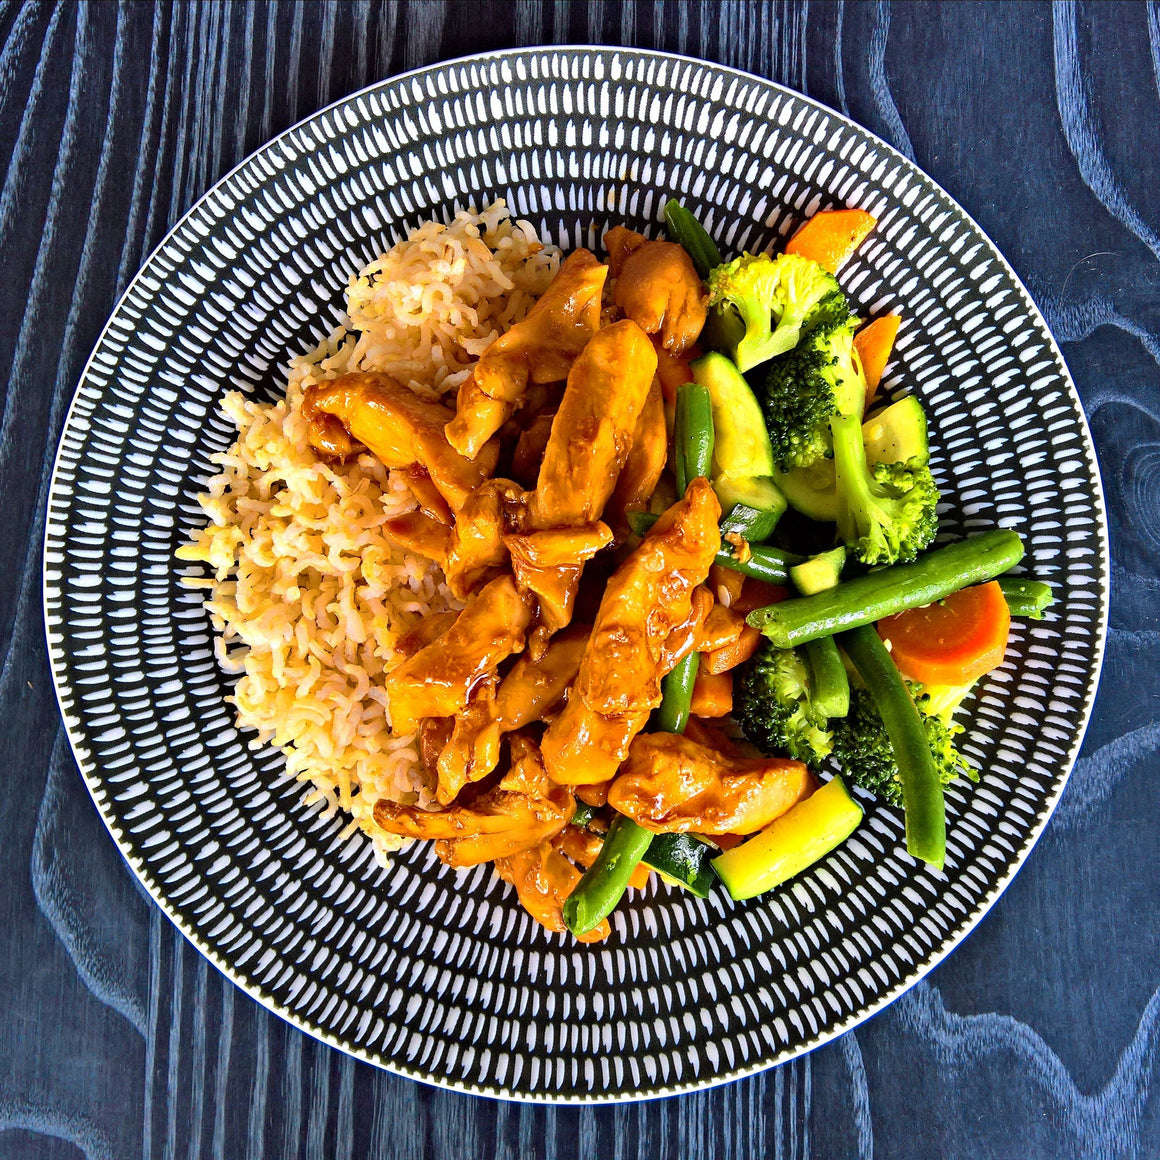 Teriyaki Chicken, Steamed Veggies & Brown Rice - 300g - Foddies